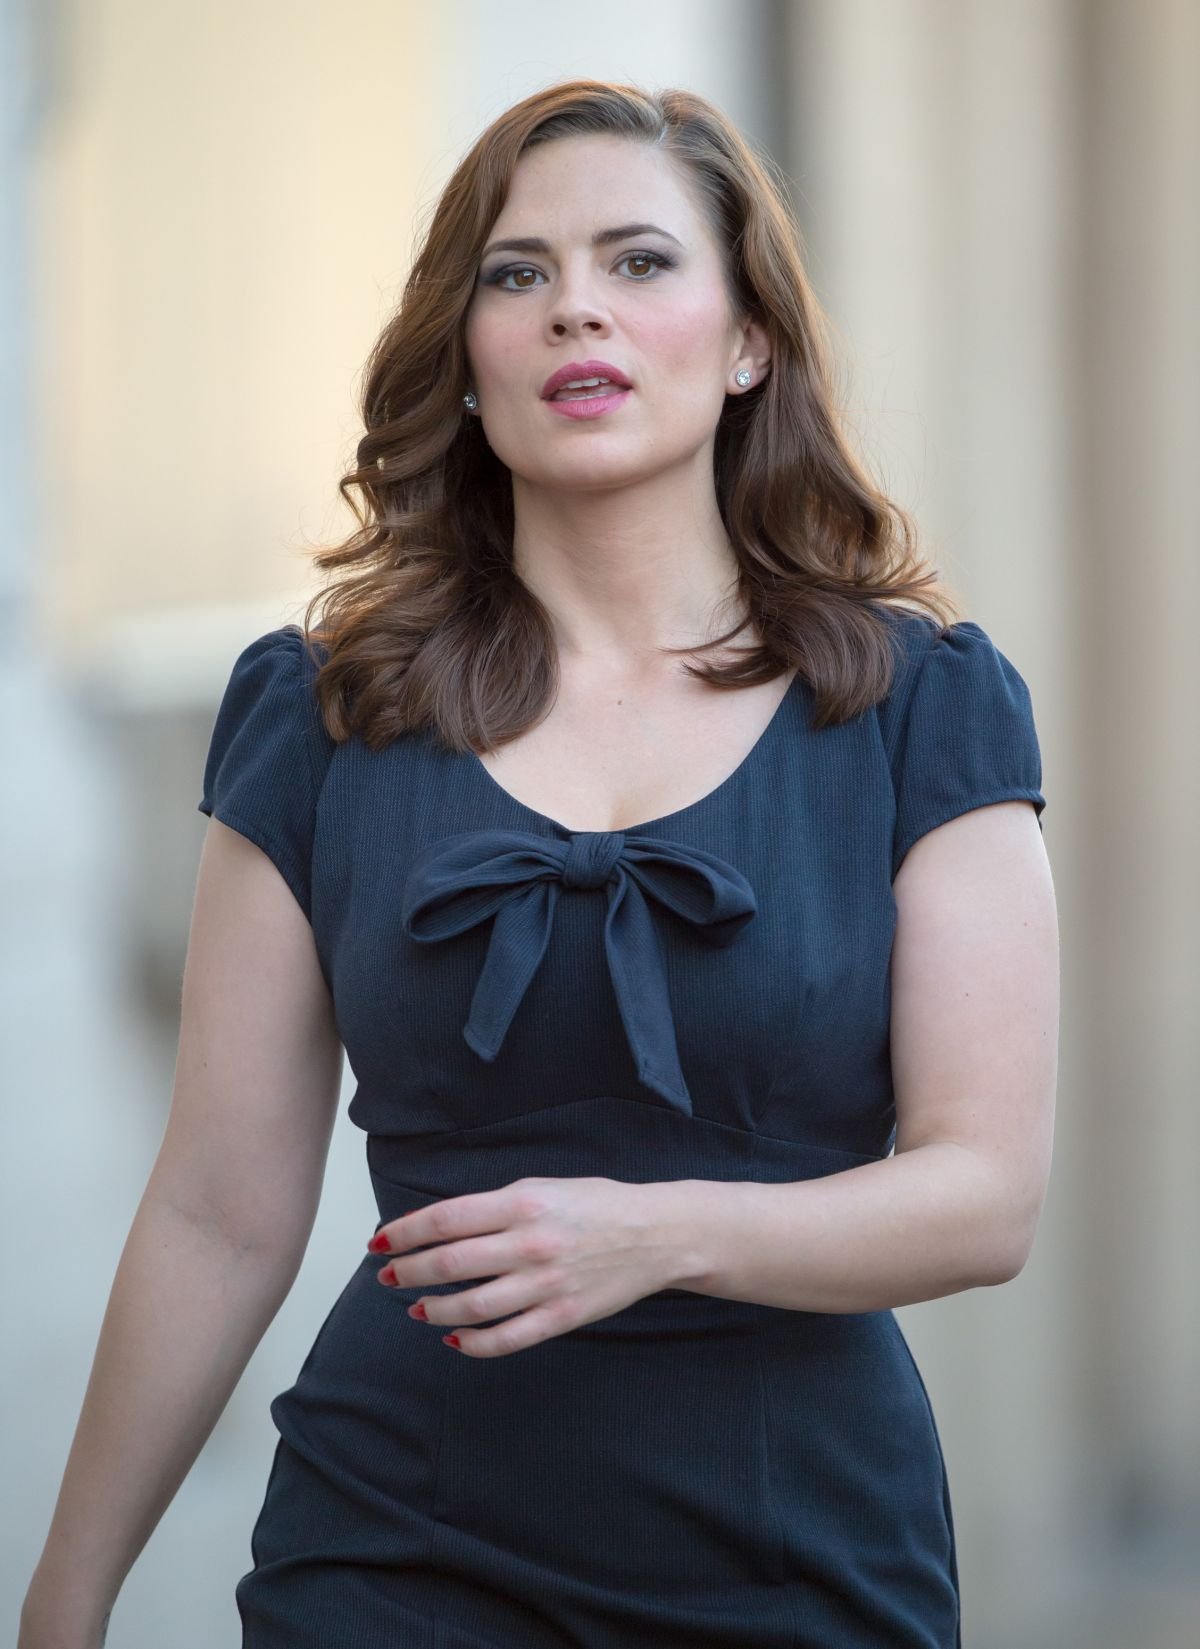 hayley atwell инстаграмhayley atwell doctor who, hayley atwell twitter, hayley atwell captain america, hayley atwell chris evans, hayley atwell fansite, hayley atwell fan, hayley atwell listal, hayley atwell 2017, hayley atwell кинопоиск, hayley atwell imdb, hayley atwell gallery, hayley atwell insta, hayley atwell png, hayley atwell lip sync battle, hayley atwell peggy carter, hayley atwell barefoot, hayley atwell tom hiddleston, hayley atwell make up, hayley atwell инстаграм, hayley atwell no bra